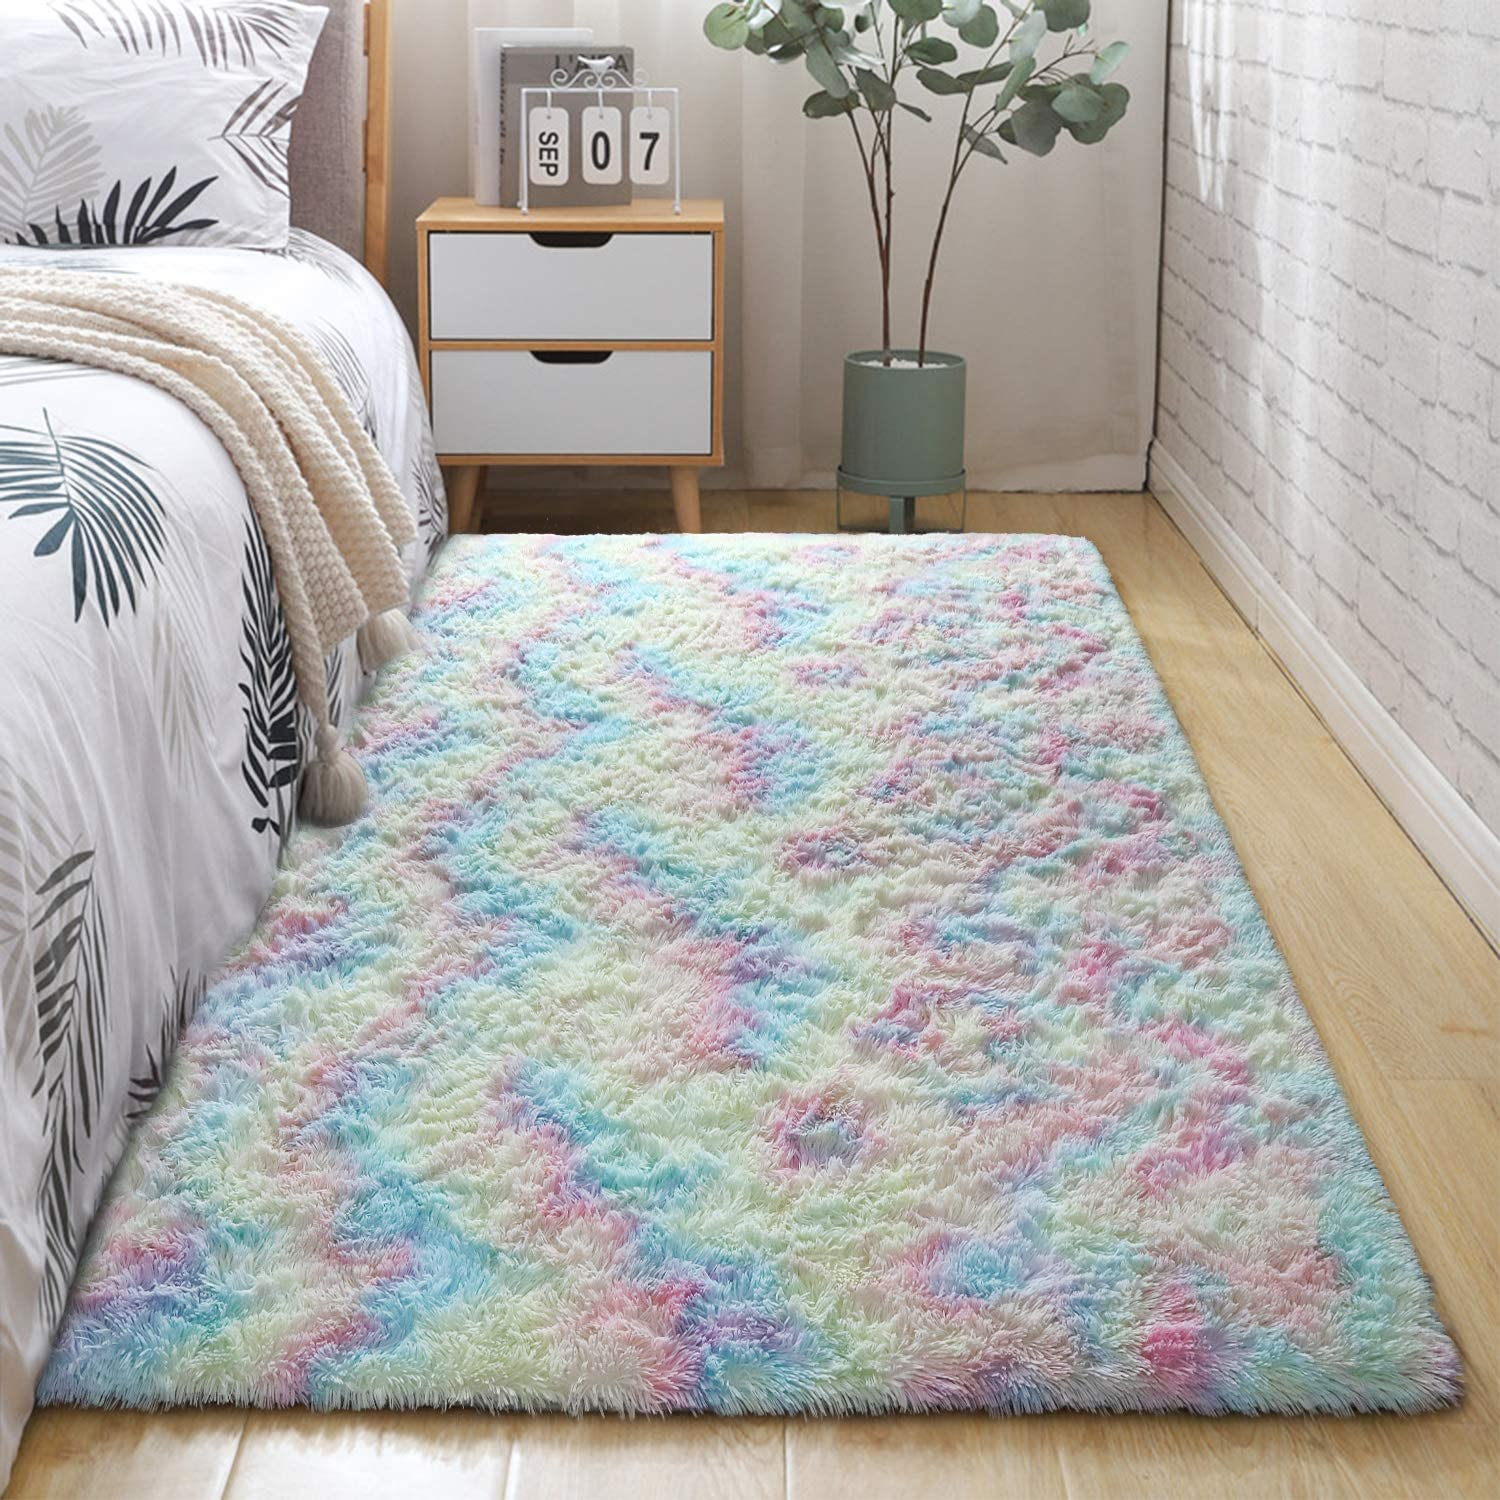 DETUM Kids Room Rug, 4x6 Feet Soft Colorful Fluffy Rug for Girls Bedroom Decor, Cute Rainbow Area Rugs for Nursery Room, Plush Carpet for Baby Girl Toddler Play Room